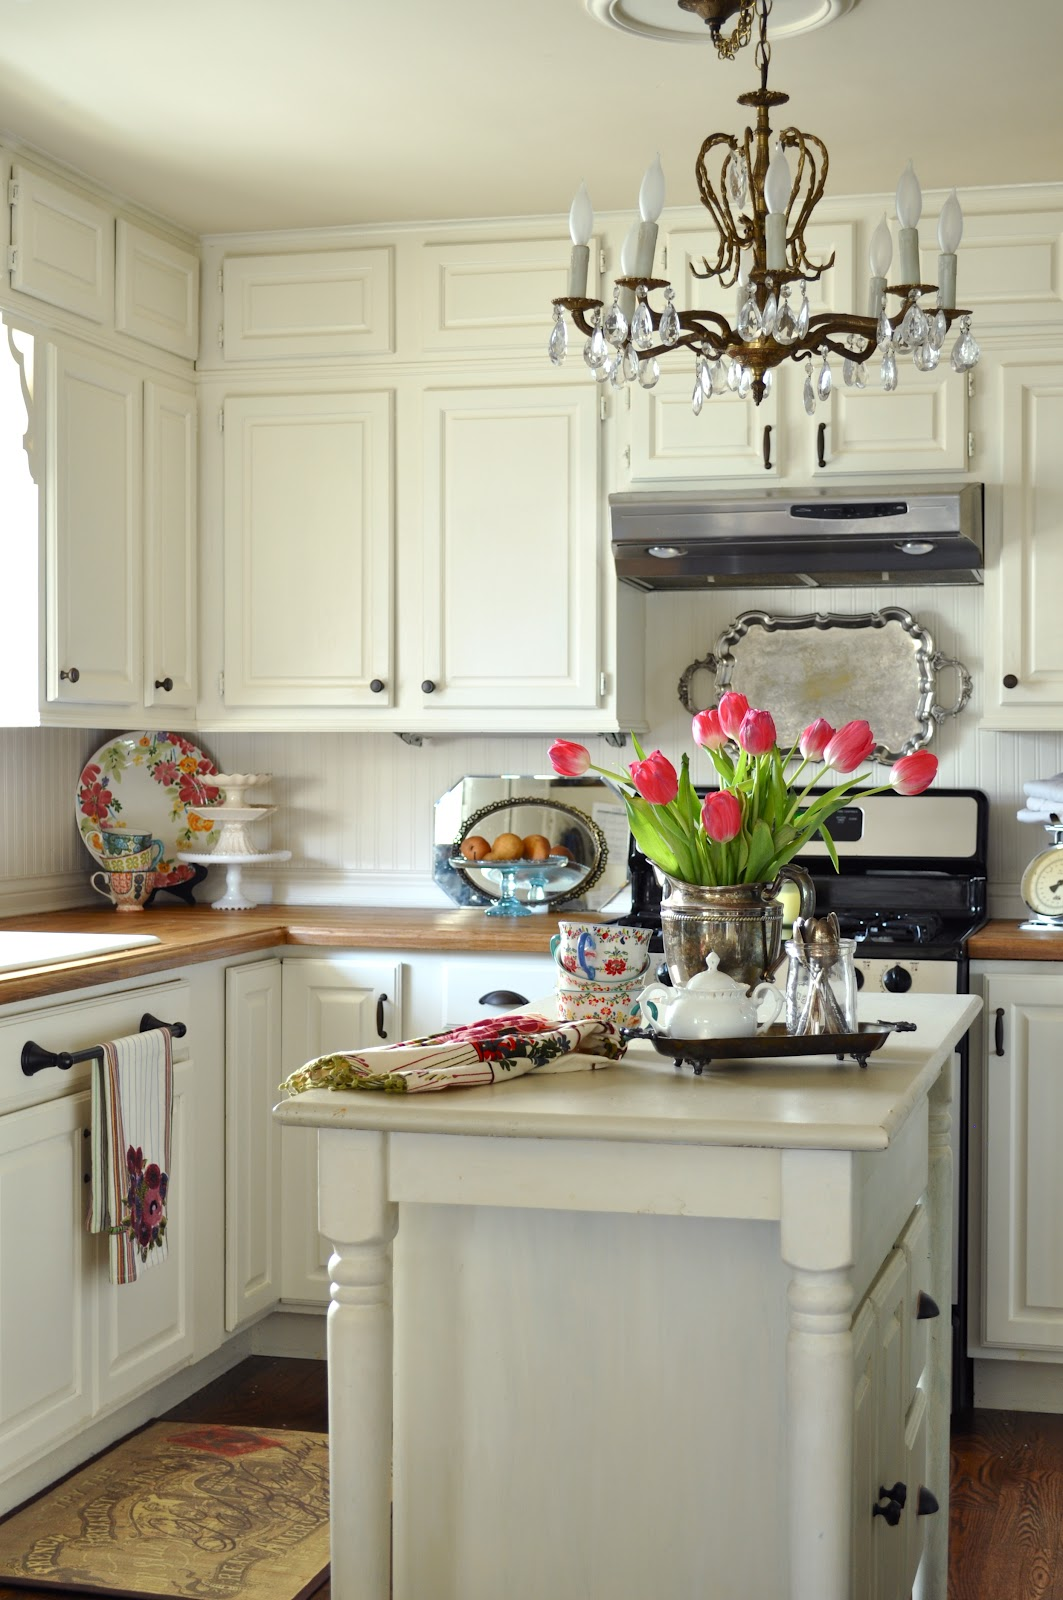 White Kitchen With Island: WhisperWood Cottage: 20 White Cottage Kitchens: Features